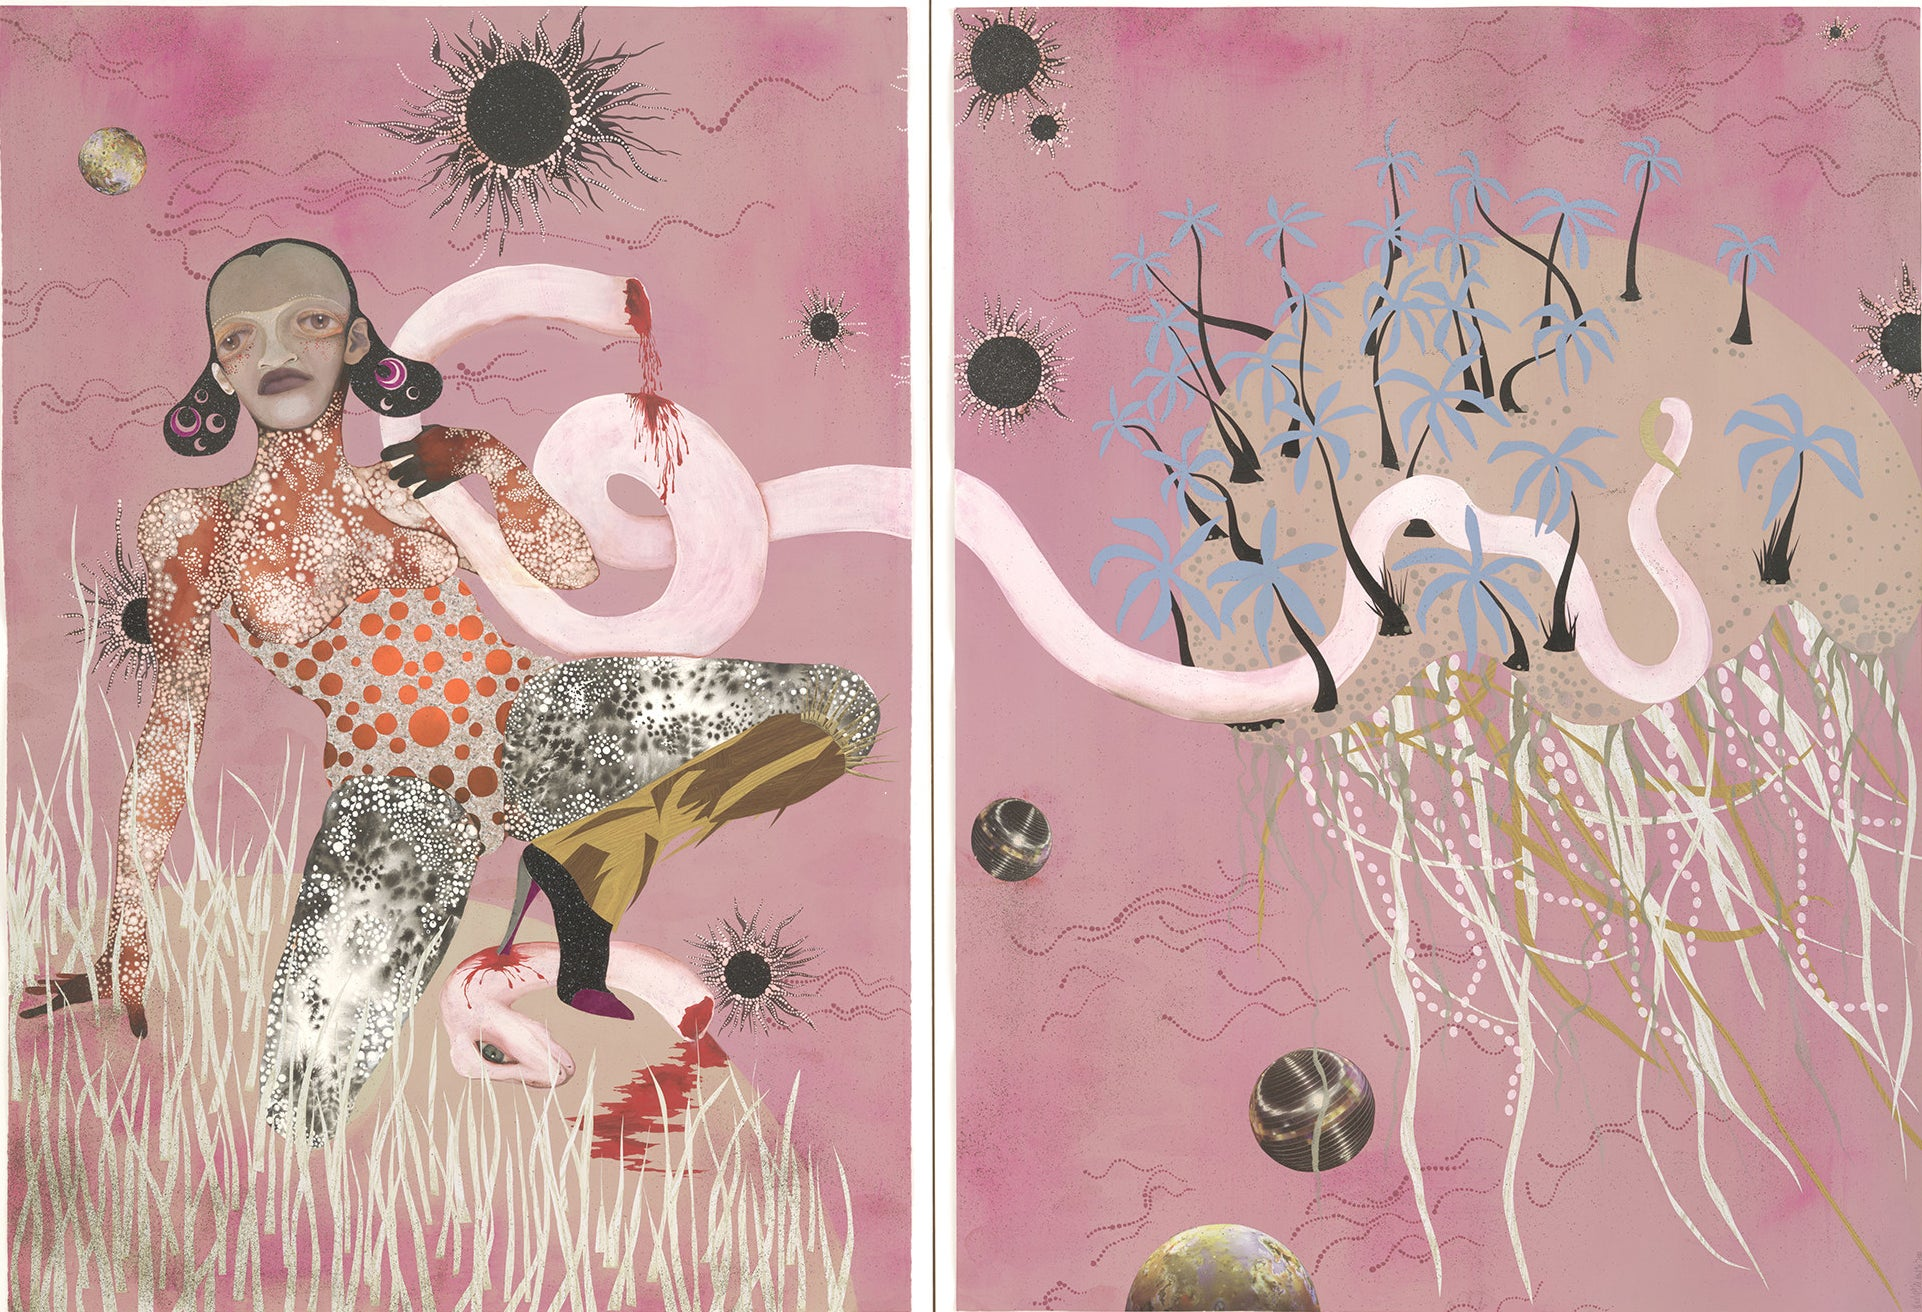 A painting collage in two panels of a woman in heels with tentacles, balls, trees